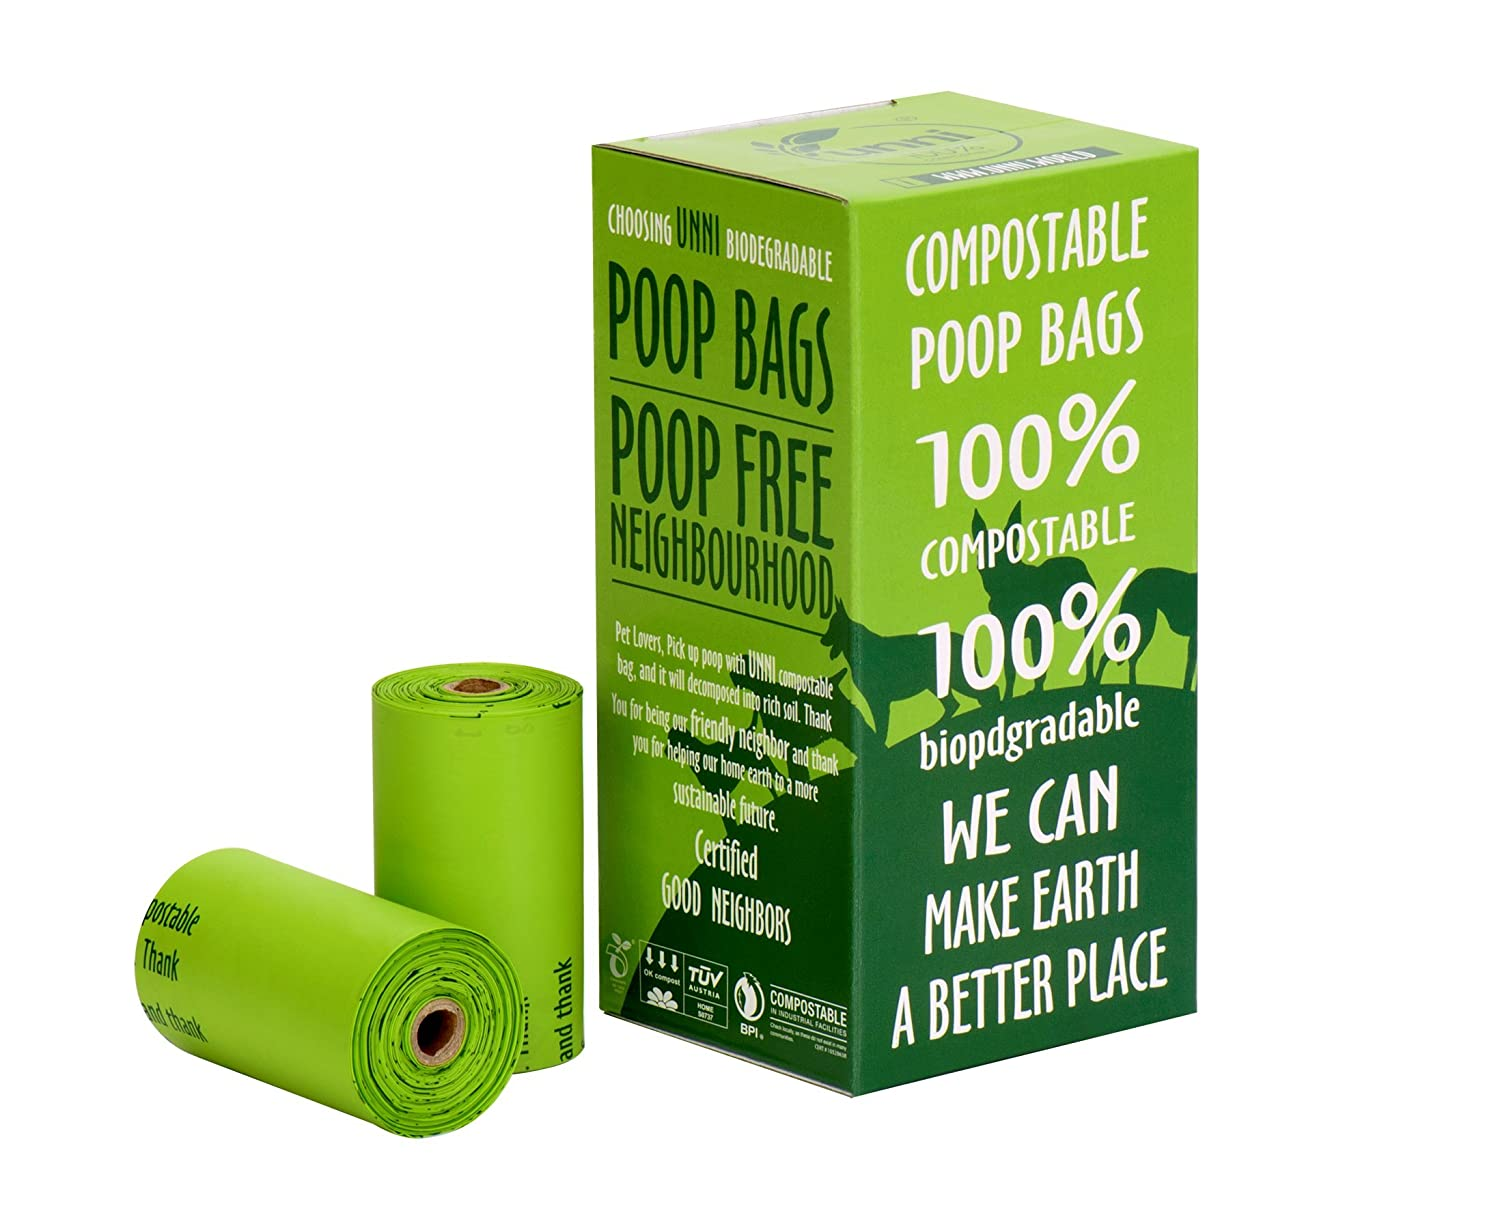 UNNI 100% Compostable Dog Poop Bags, Extra Thick Pet Waste Bags, 120 Count, 8 Refill Rolls, 9x13 Inches, Earth Friendly Highest ASTM D6400, US BPI and ...